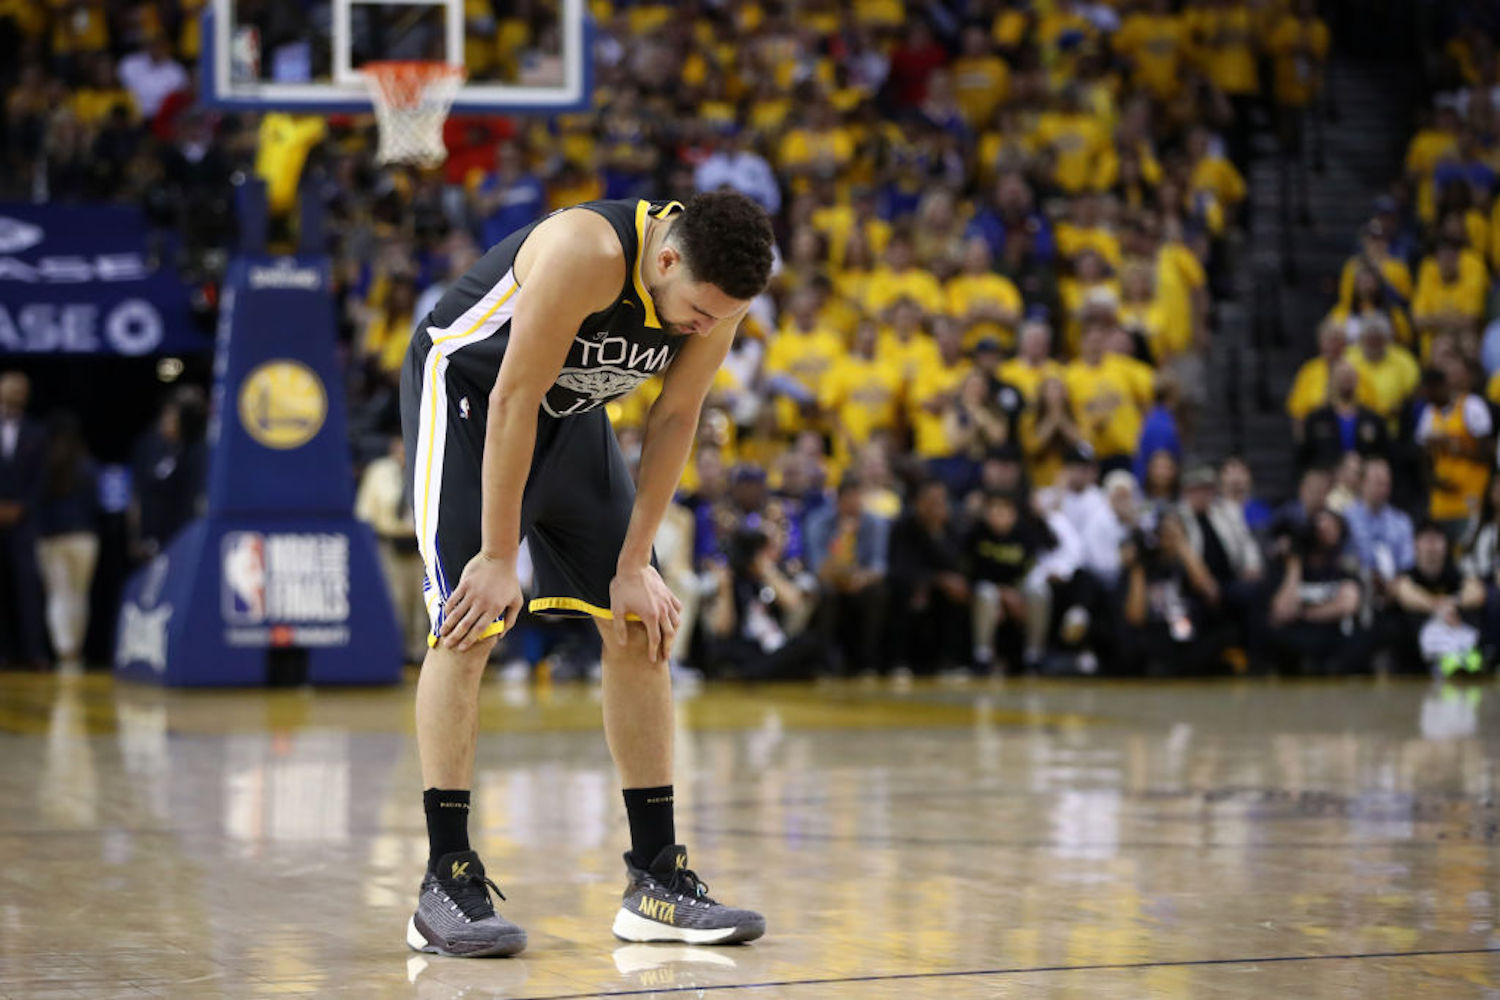 Klay Thompson will miss his second season in a row after tearing his Achilles last month. When will the sharpshooter return from his injury?